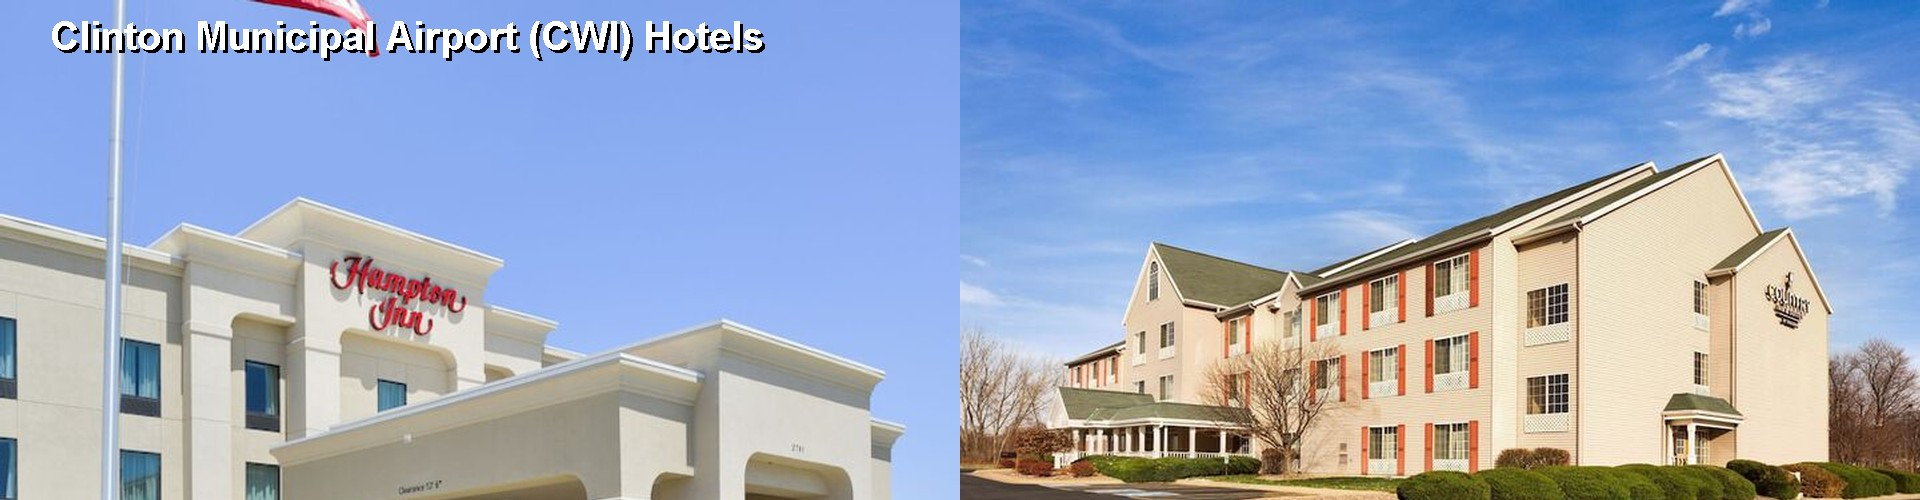 5 Best Hotels near Clinton Municipal Airport (CWI)